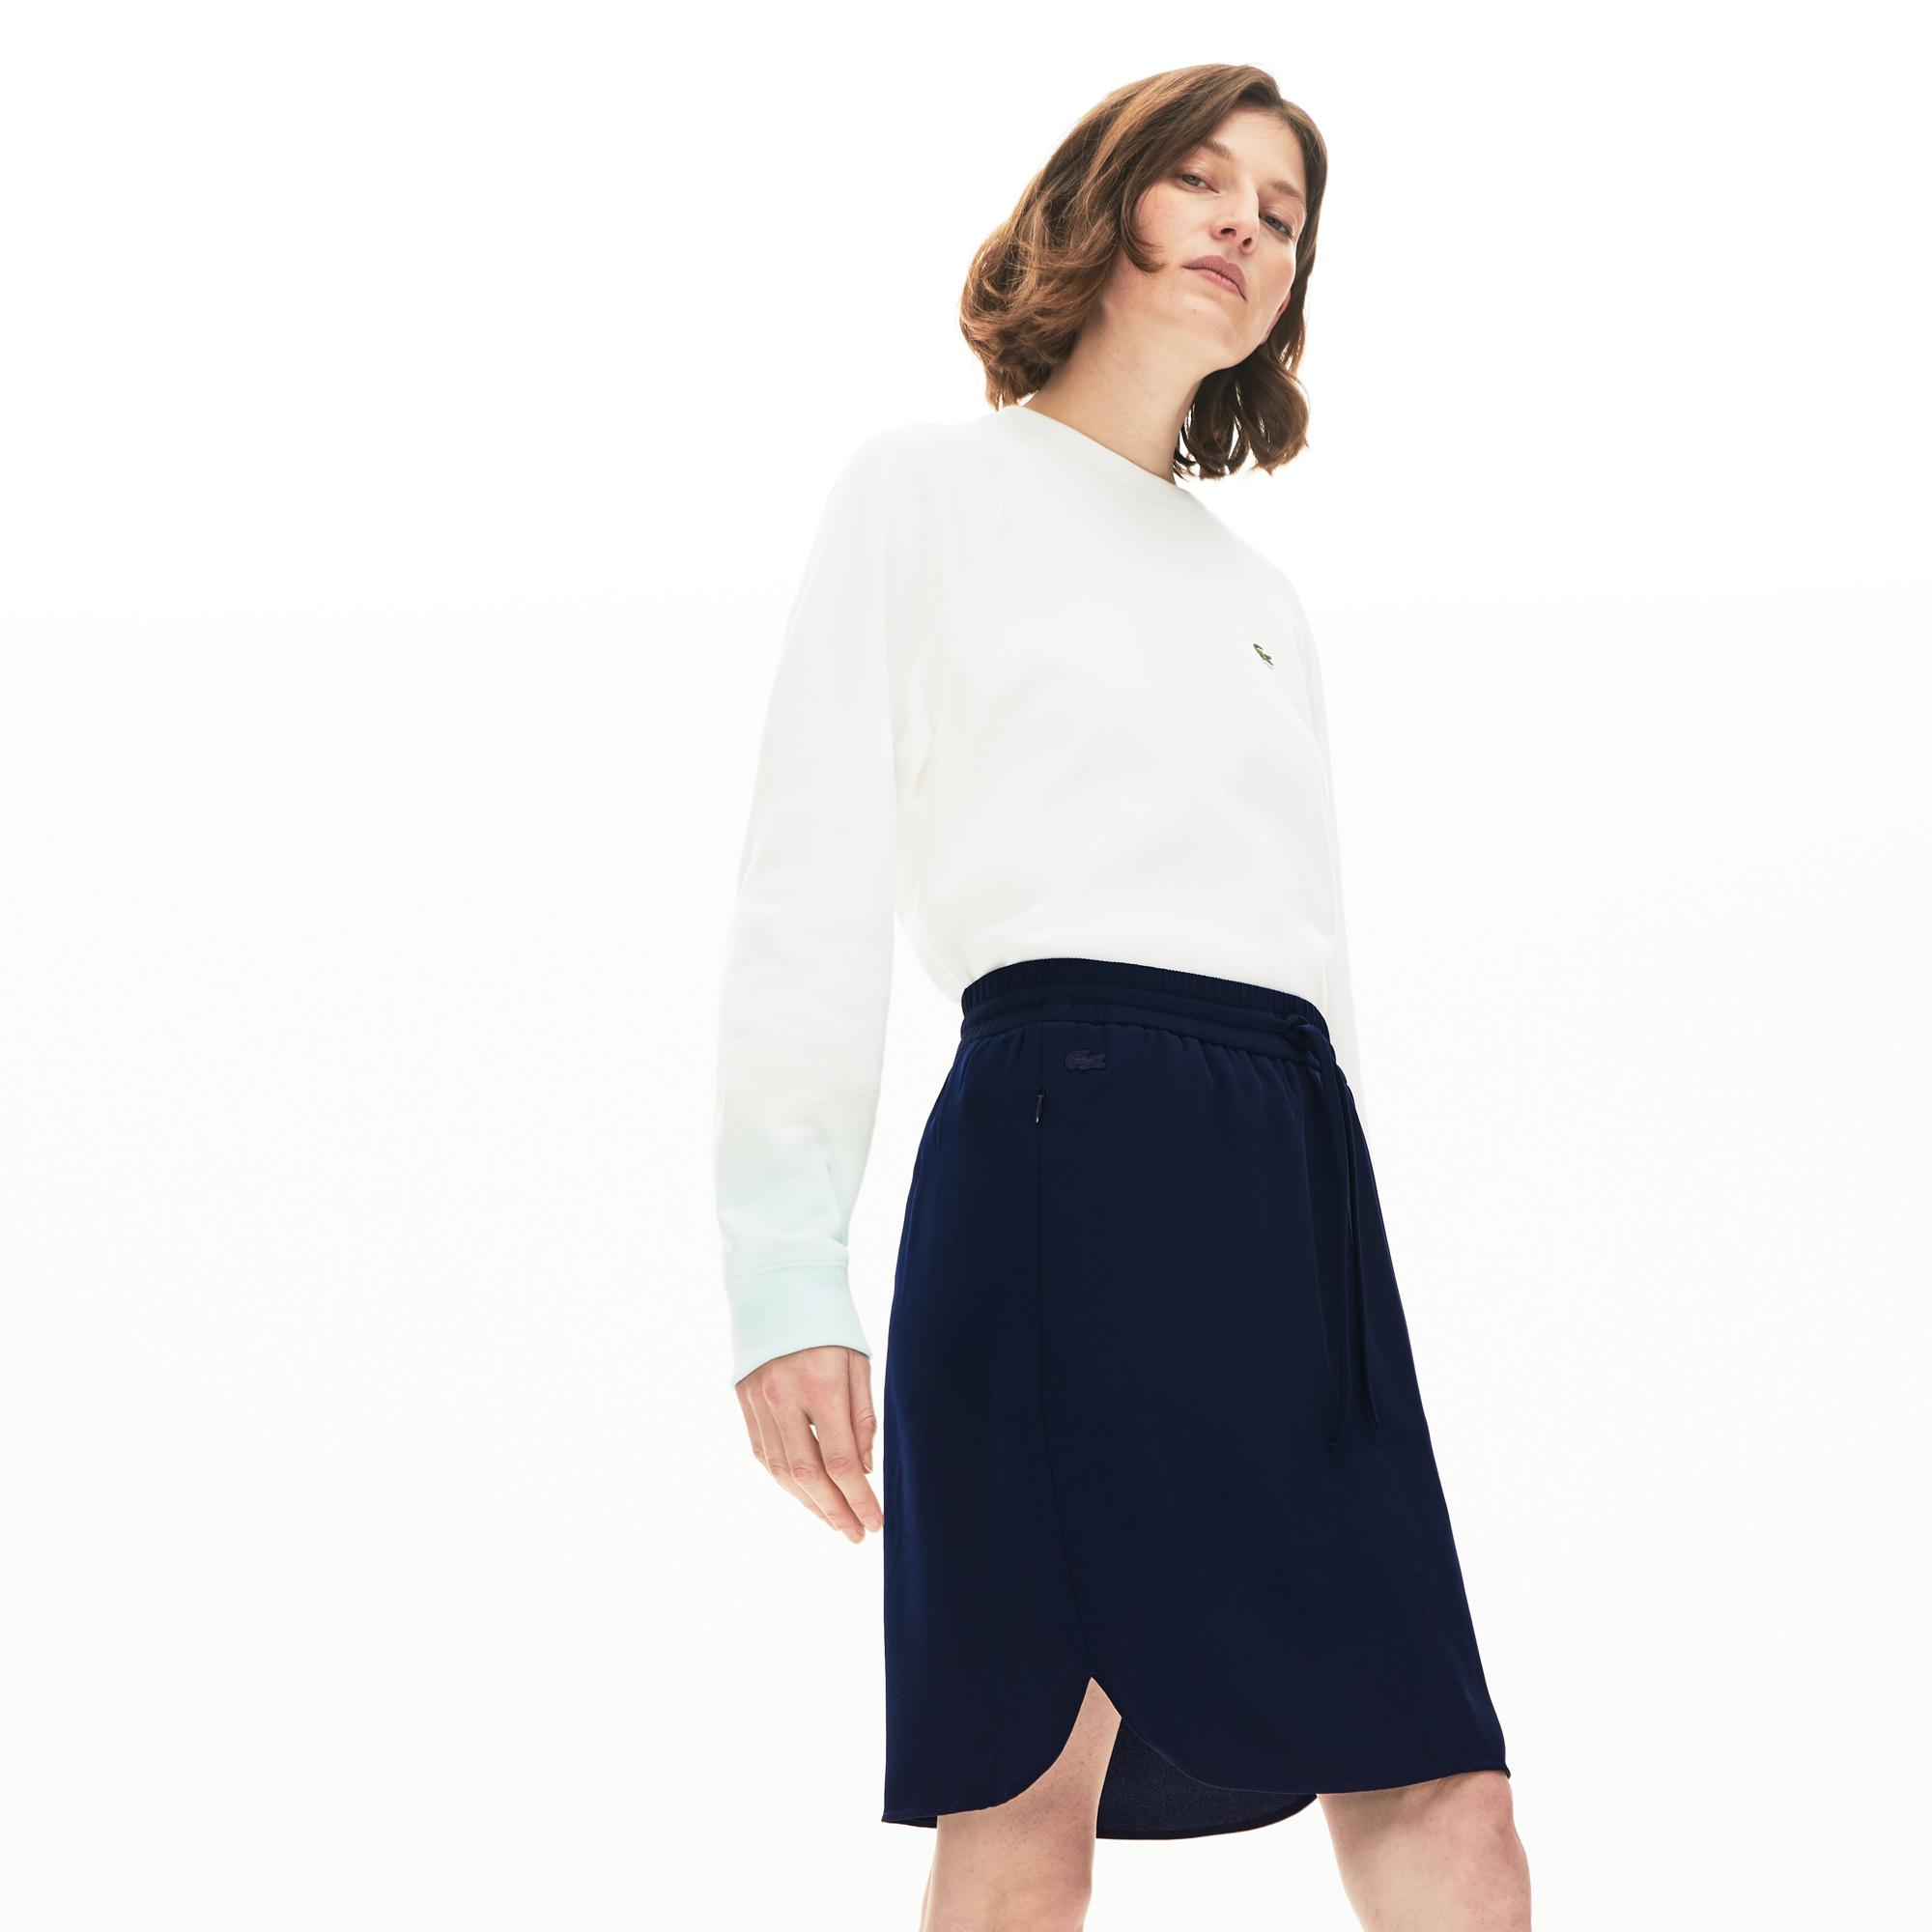 Lacoste Women's Elasticised Waistband Skirt